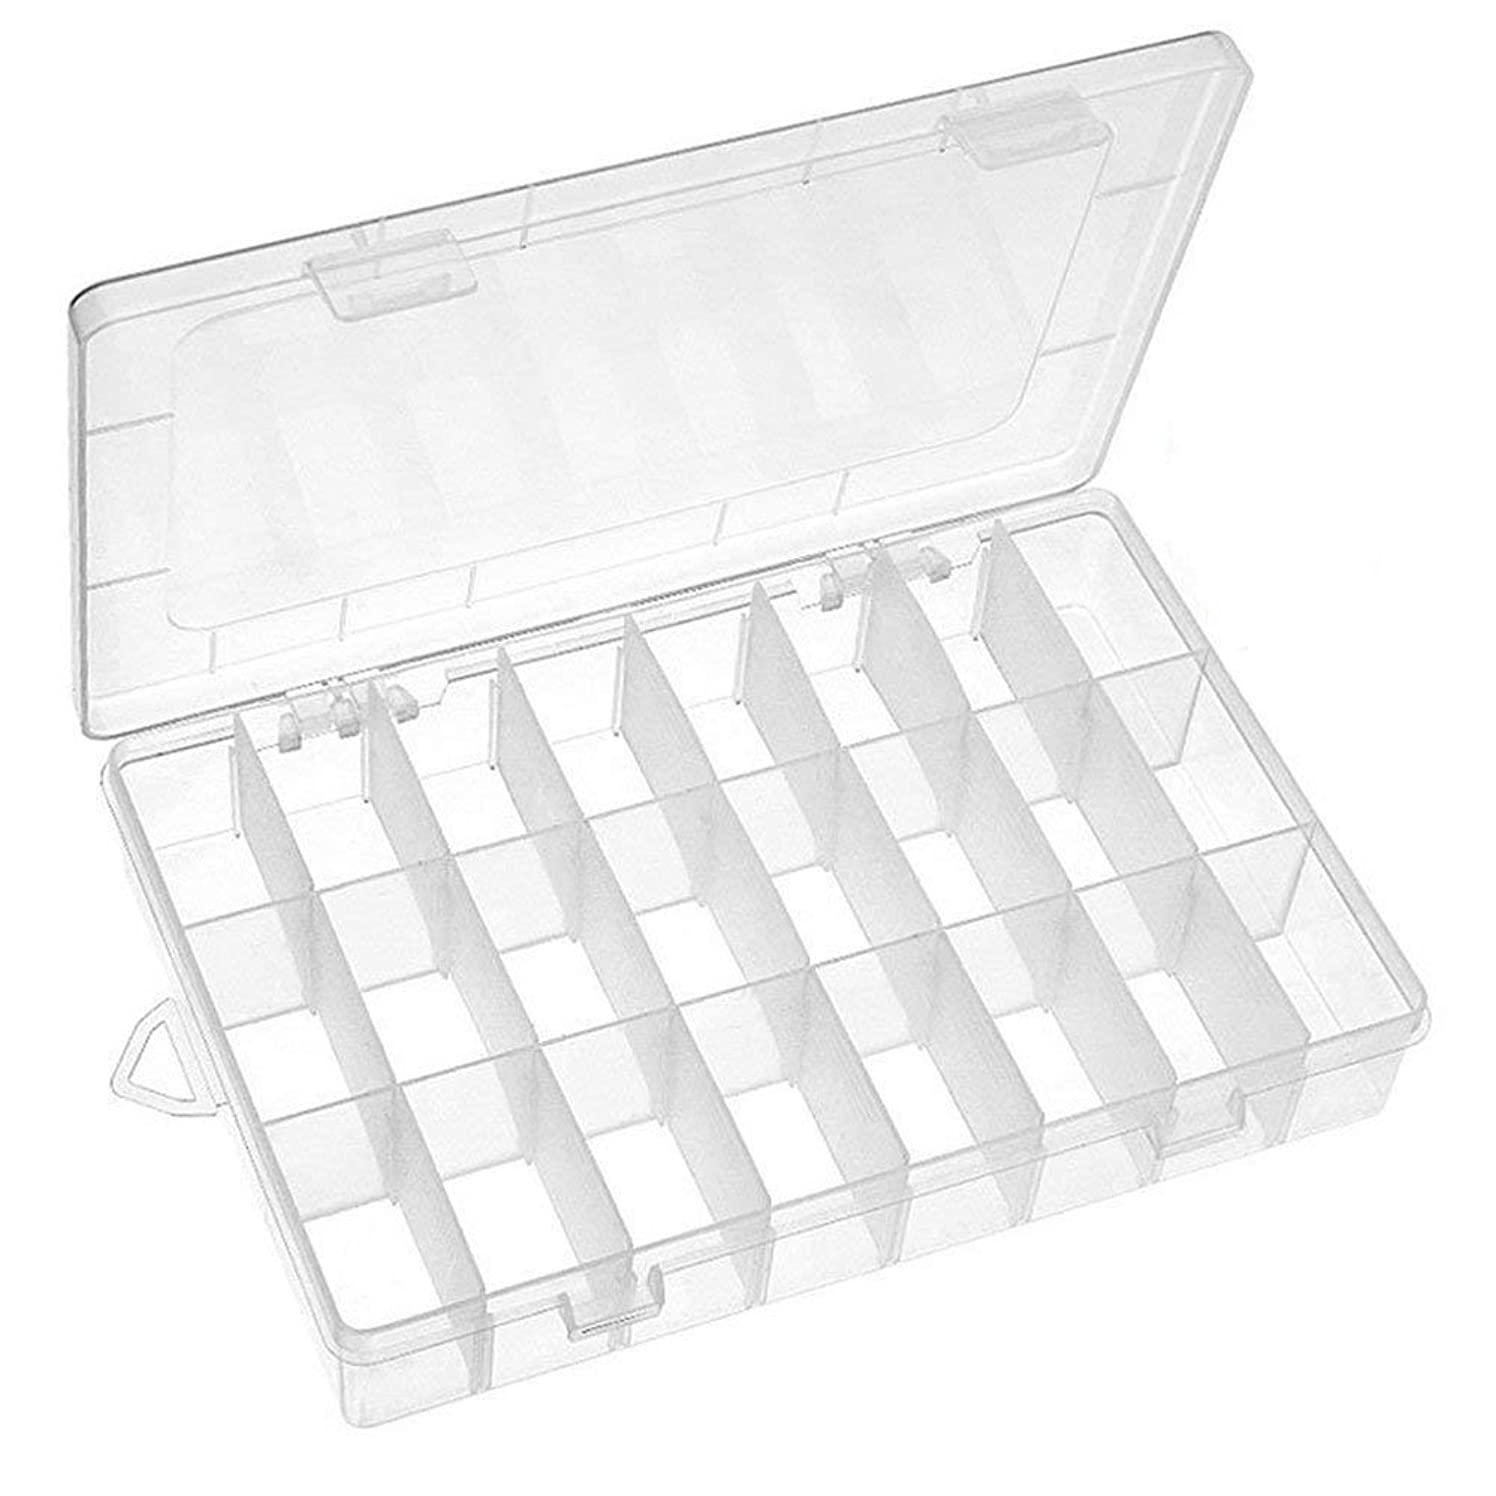 Mavel Plastic Jewelry Organizer Box 24 Grids Clear Storage Container Compartment Box with Adjustable Dividers